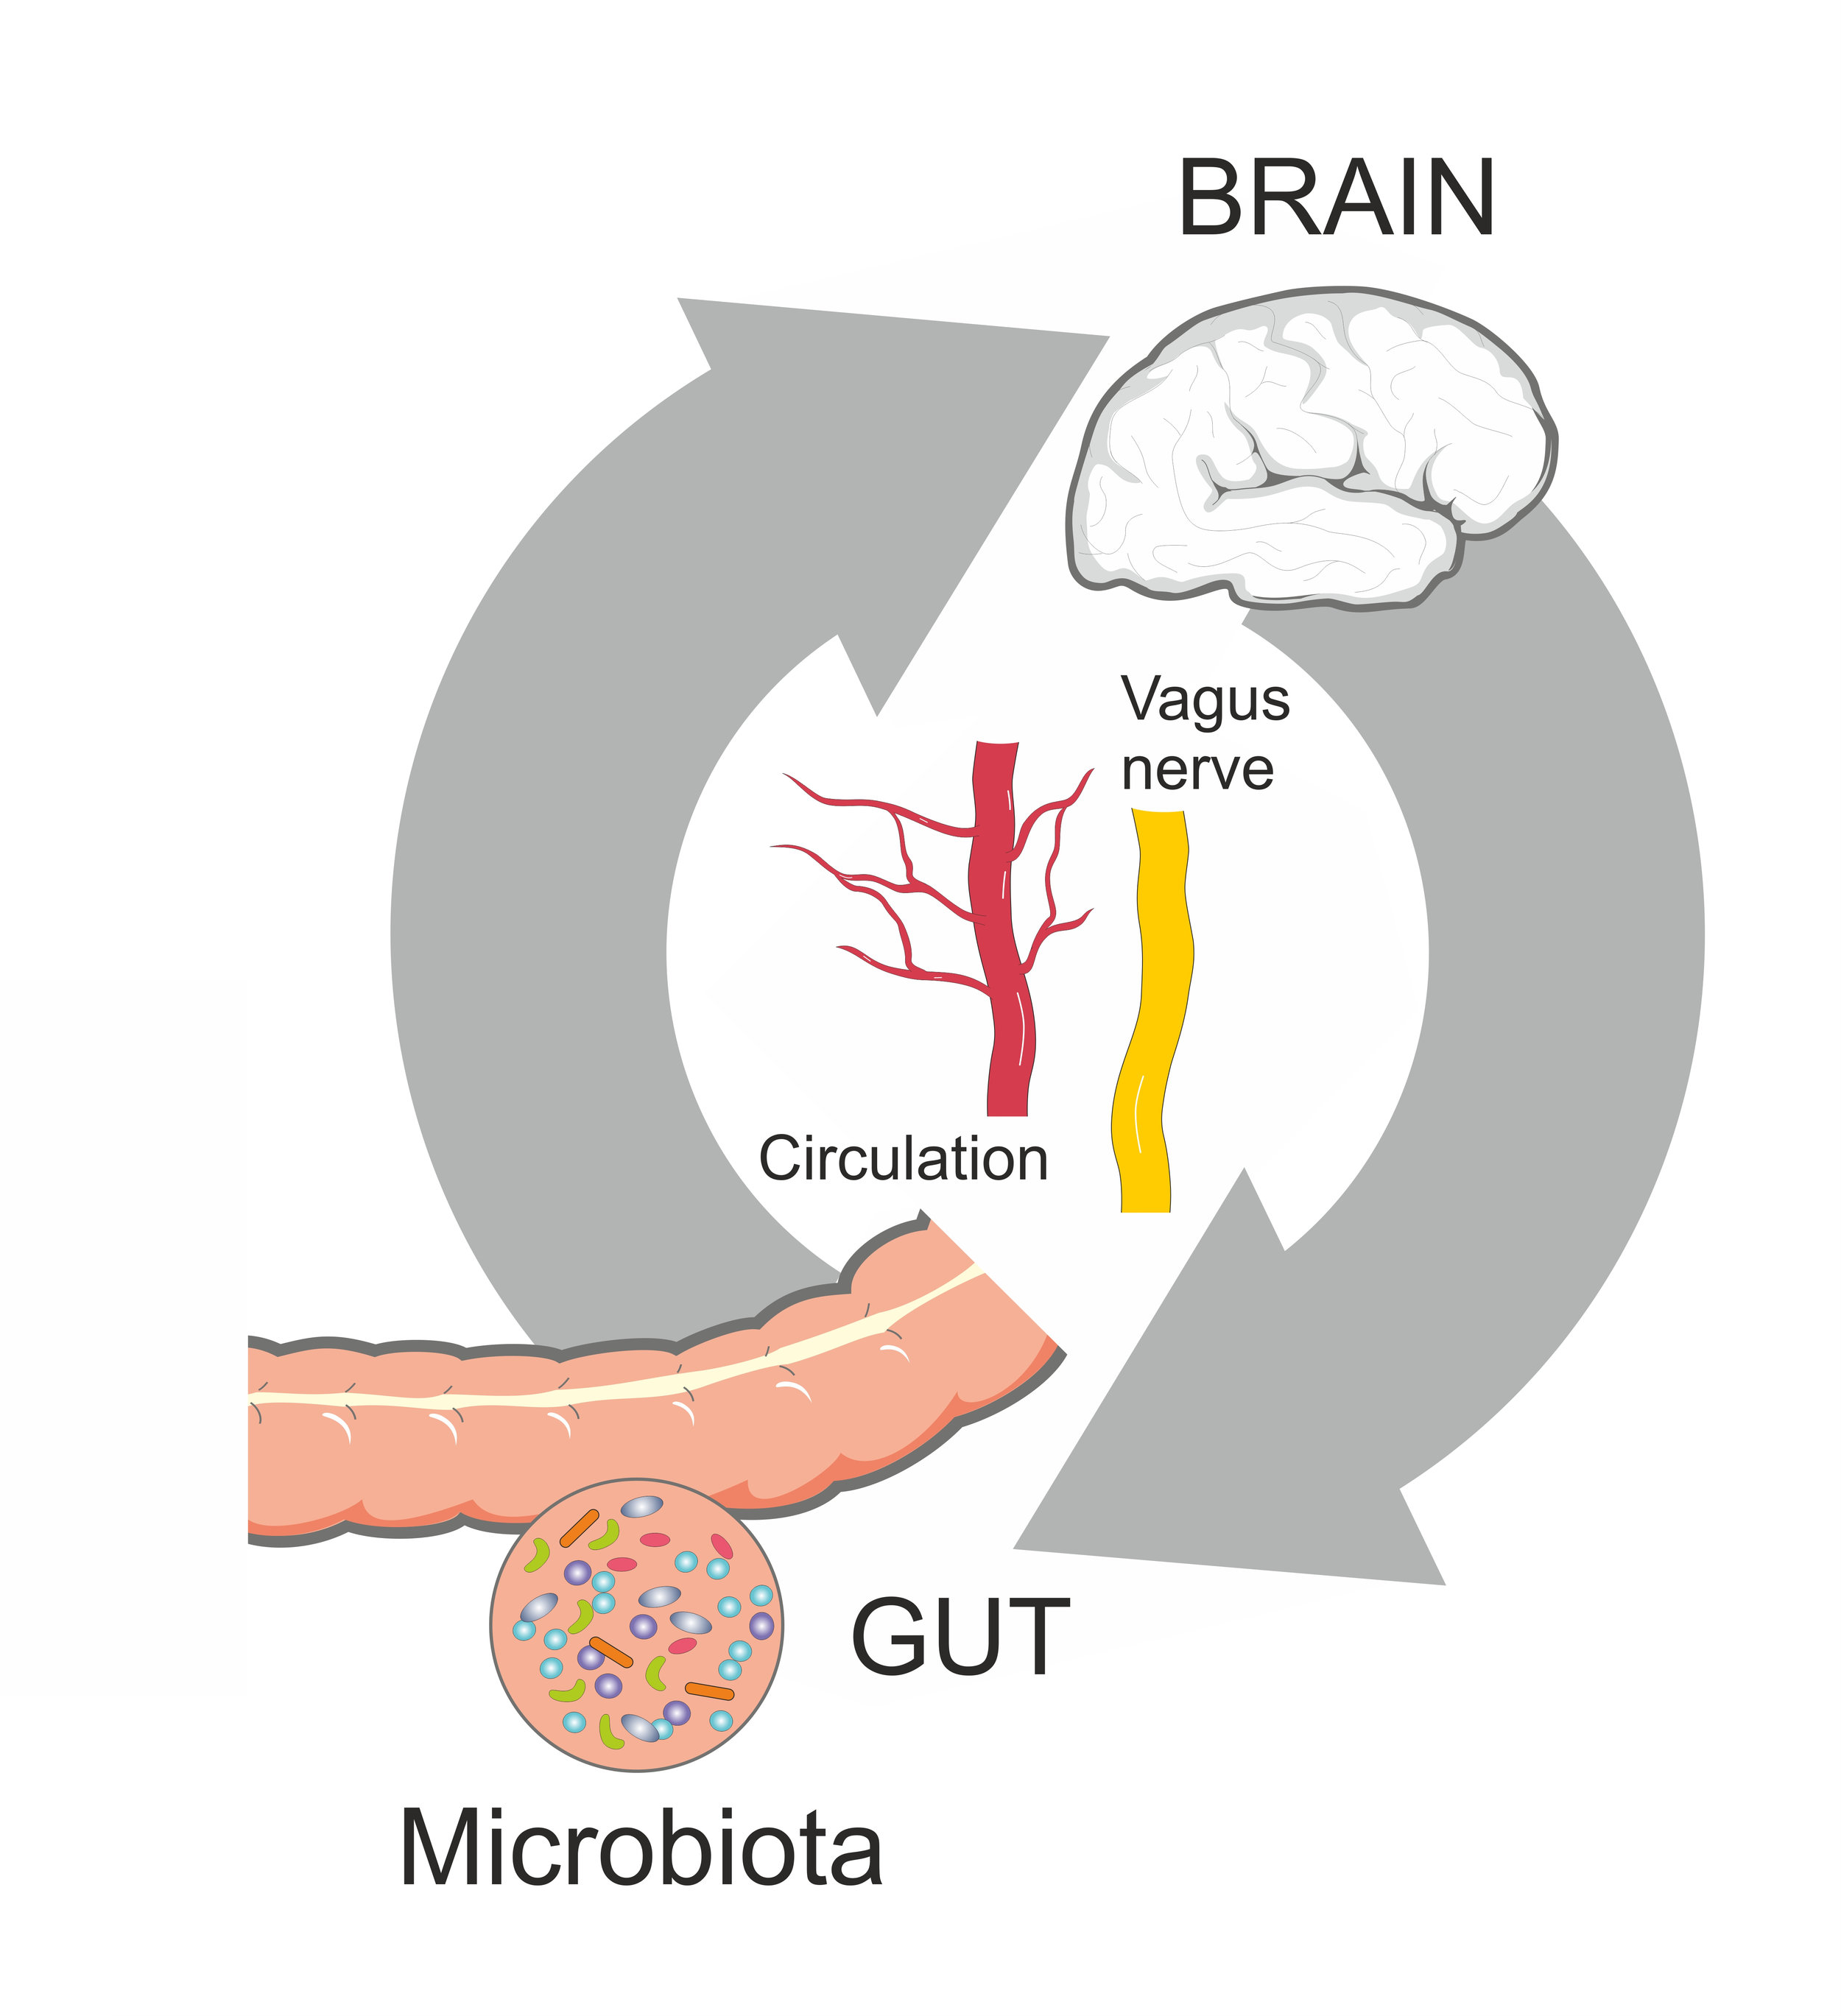 The gut is the second brain